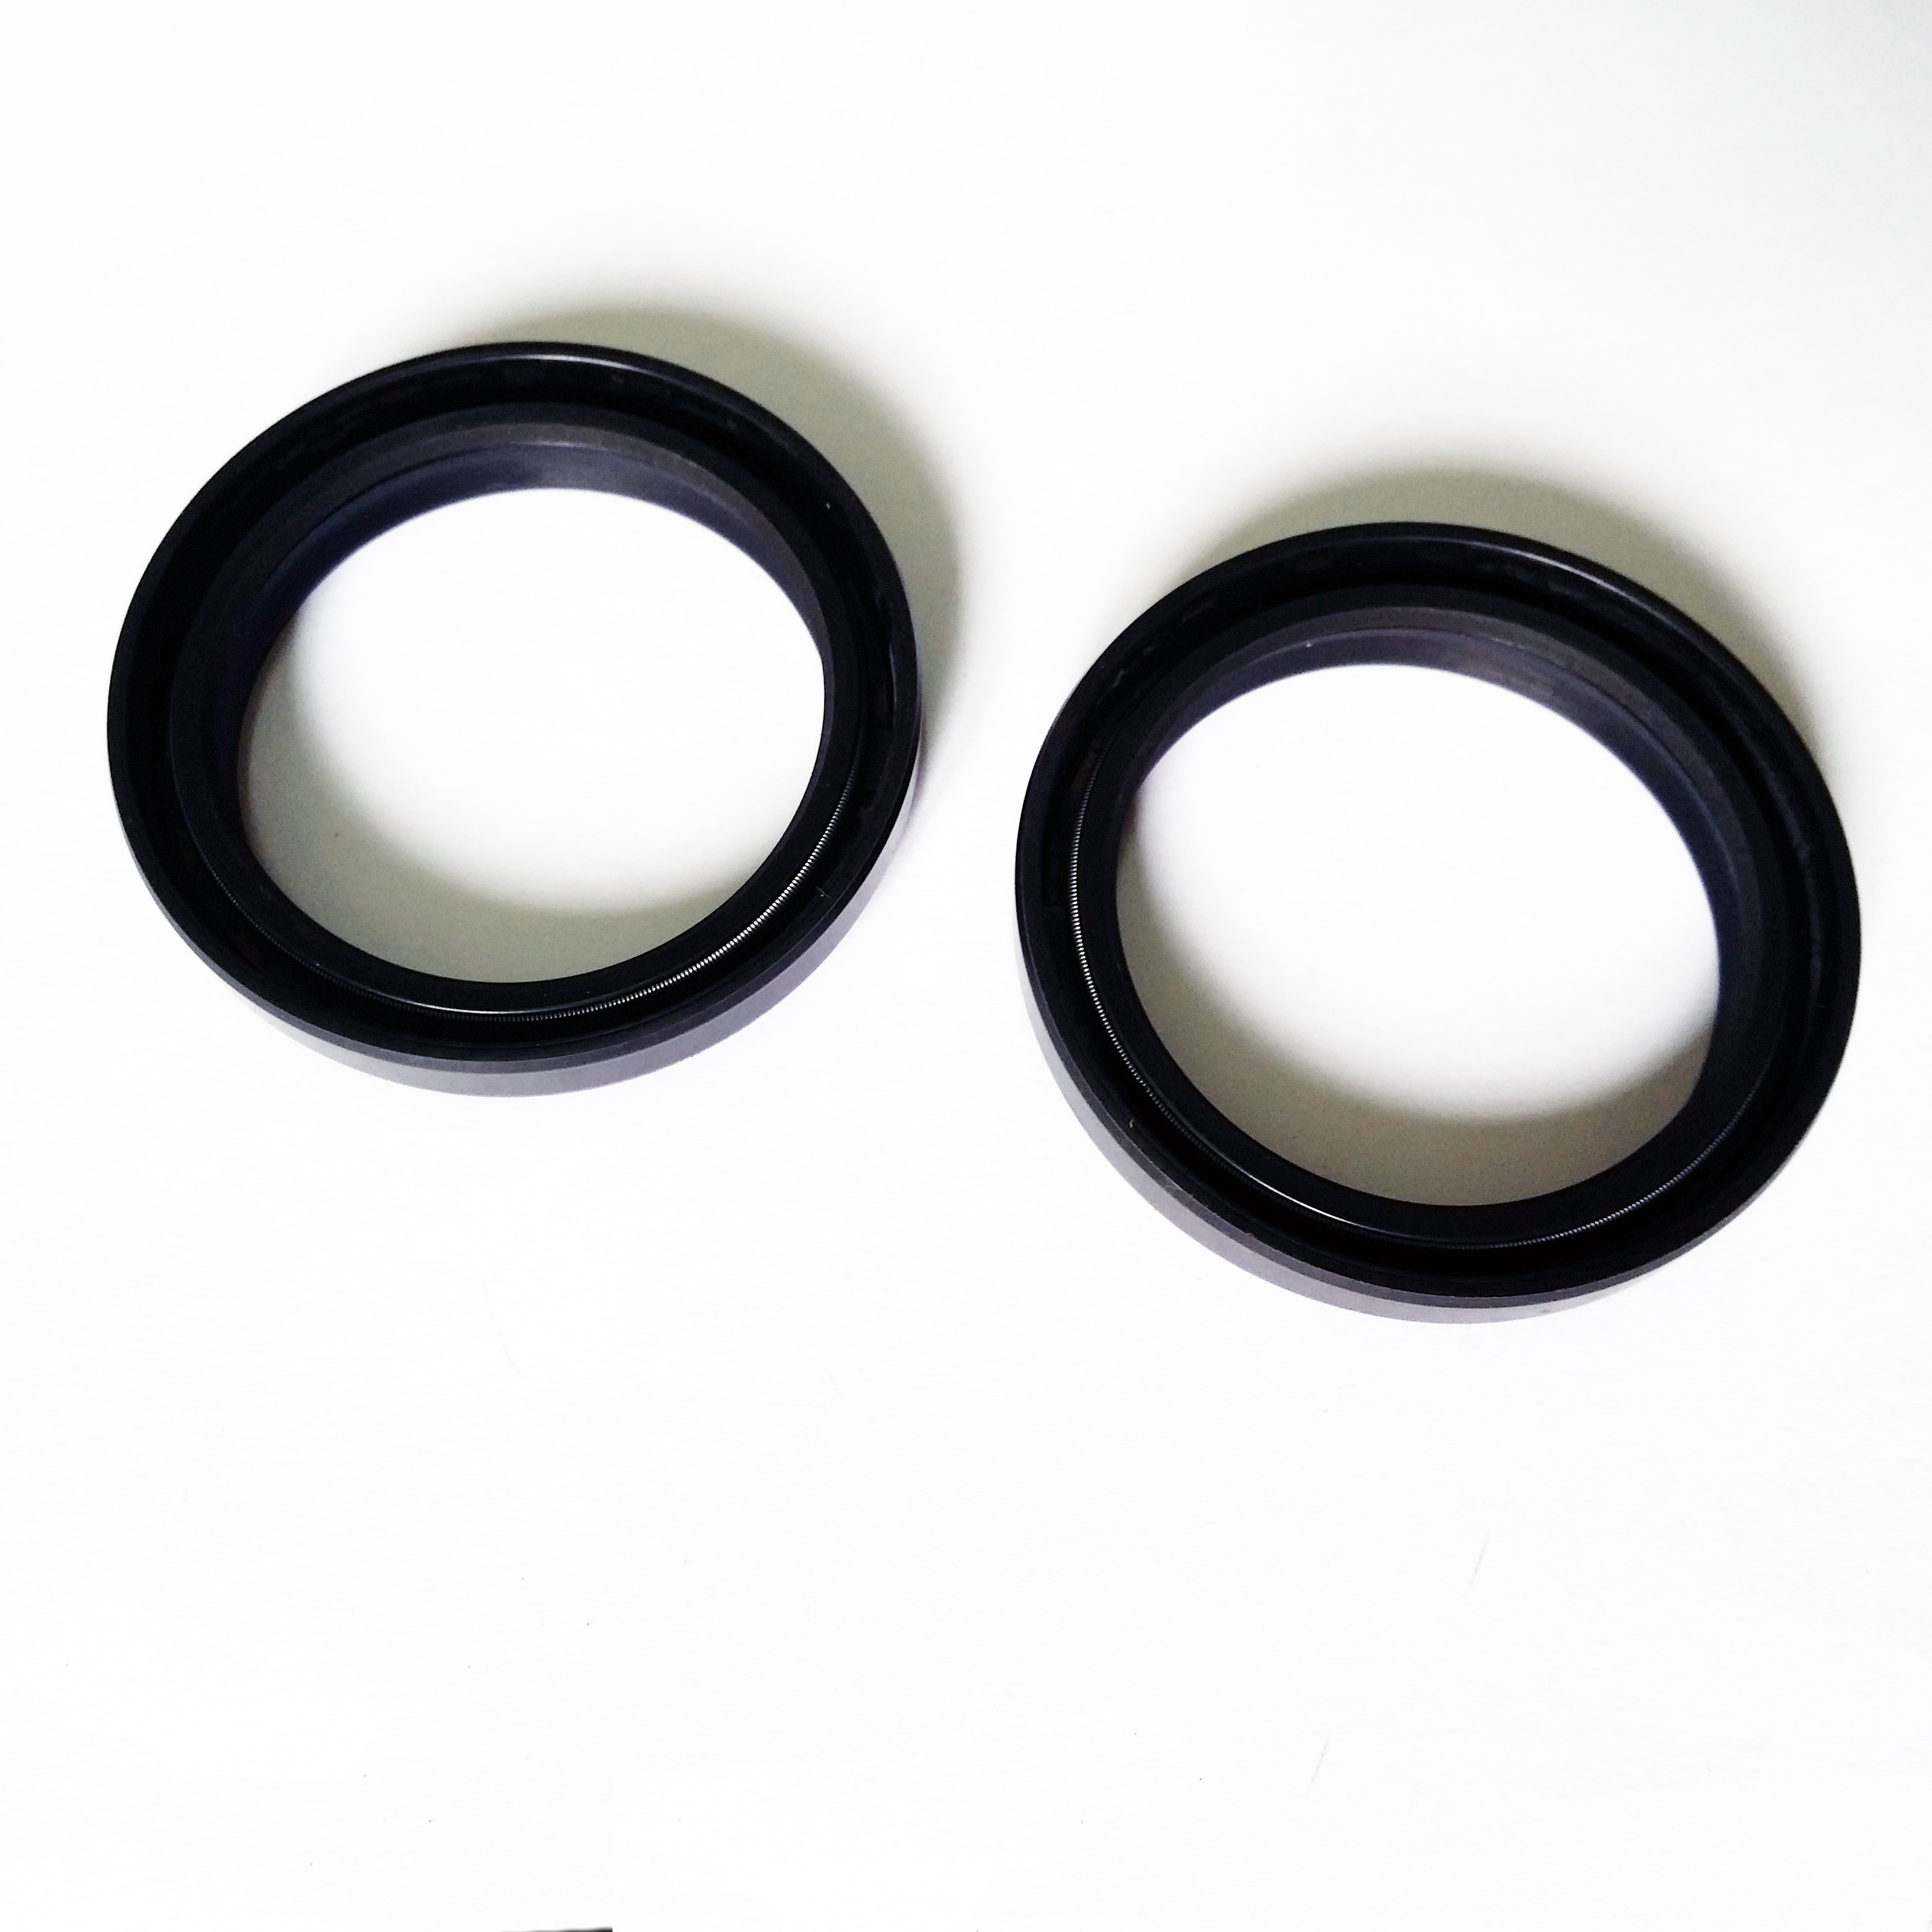 K-Tech Husaberg FE350 2011-2013 NOK Front Fork Oil Seals